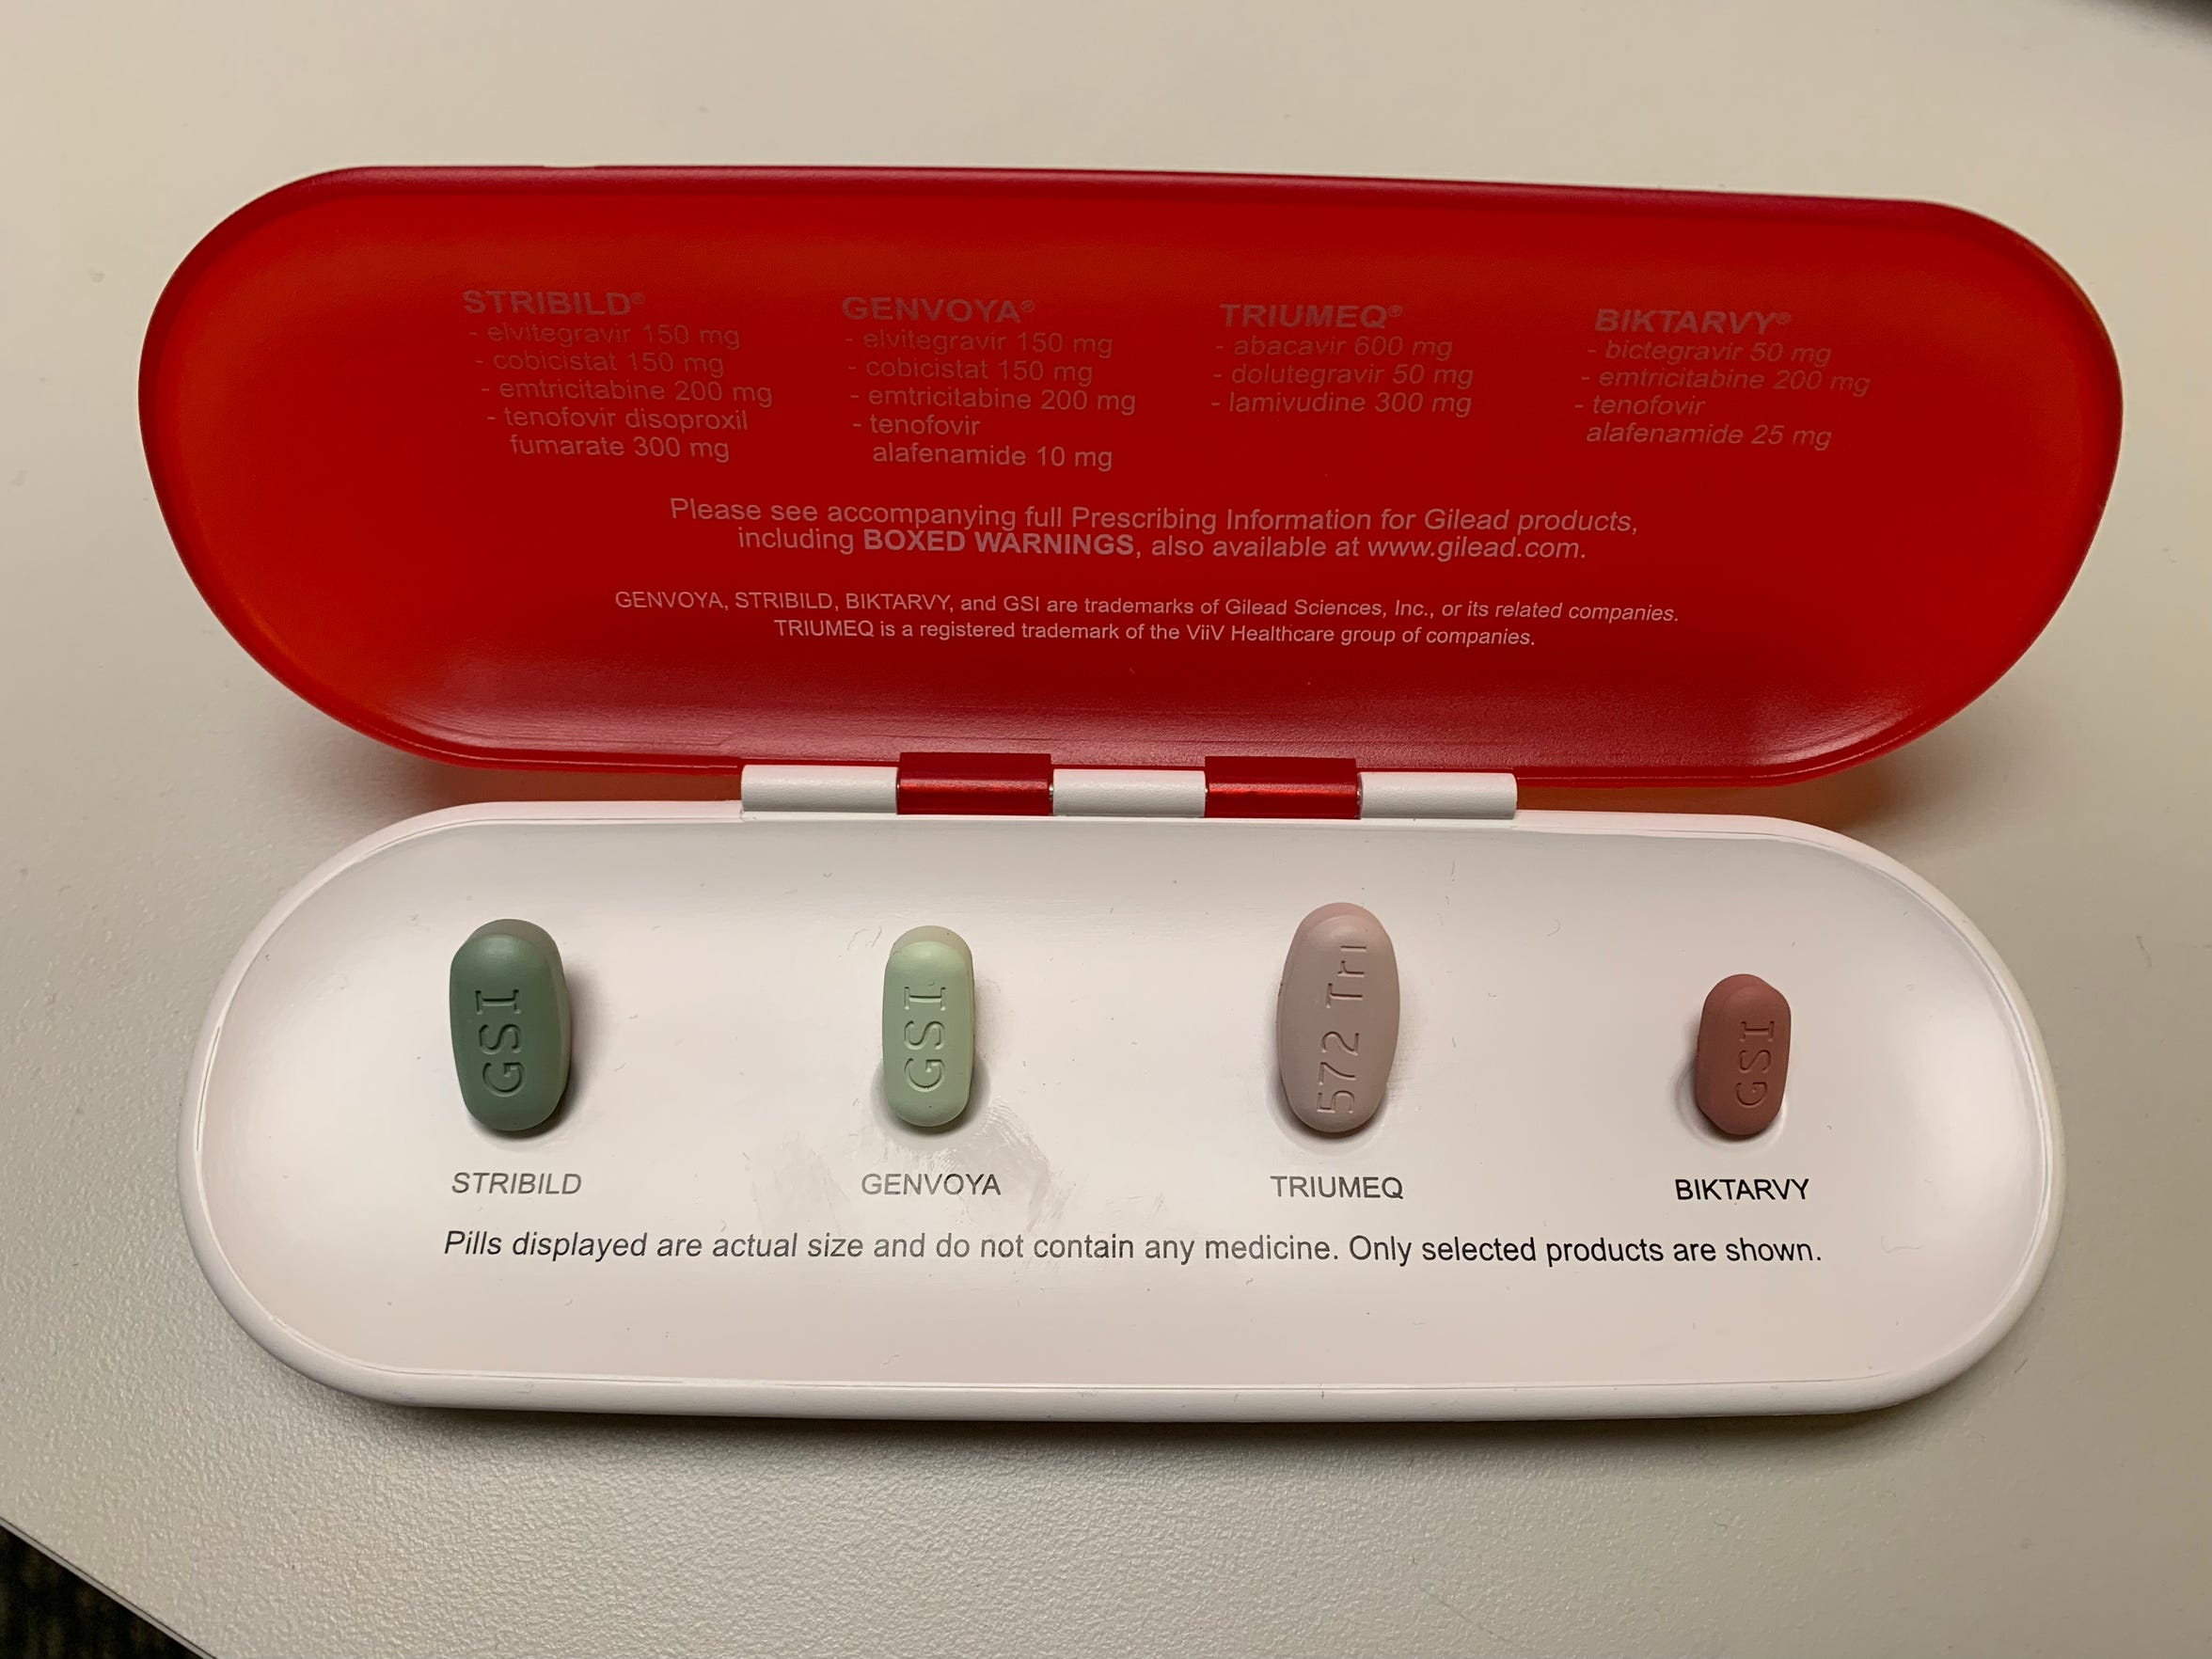 Major medical advancements have been made in HIV treatment-- including the sheer size and volume of pills patients have to take. Biktarvy, one of the most common medications now to treat HIV, is much smaller in size than previous pills.